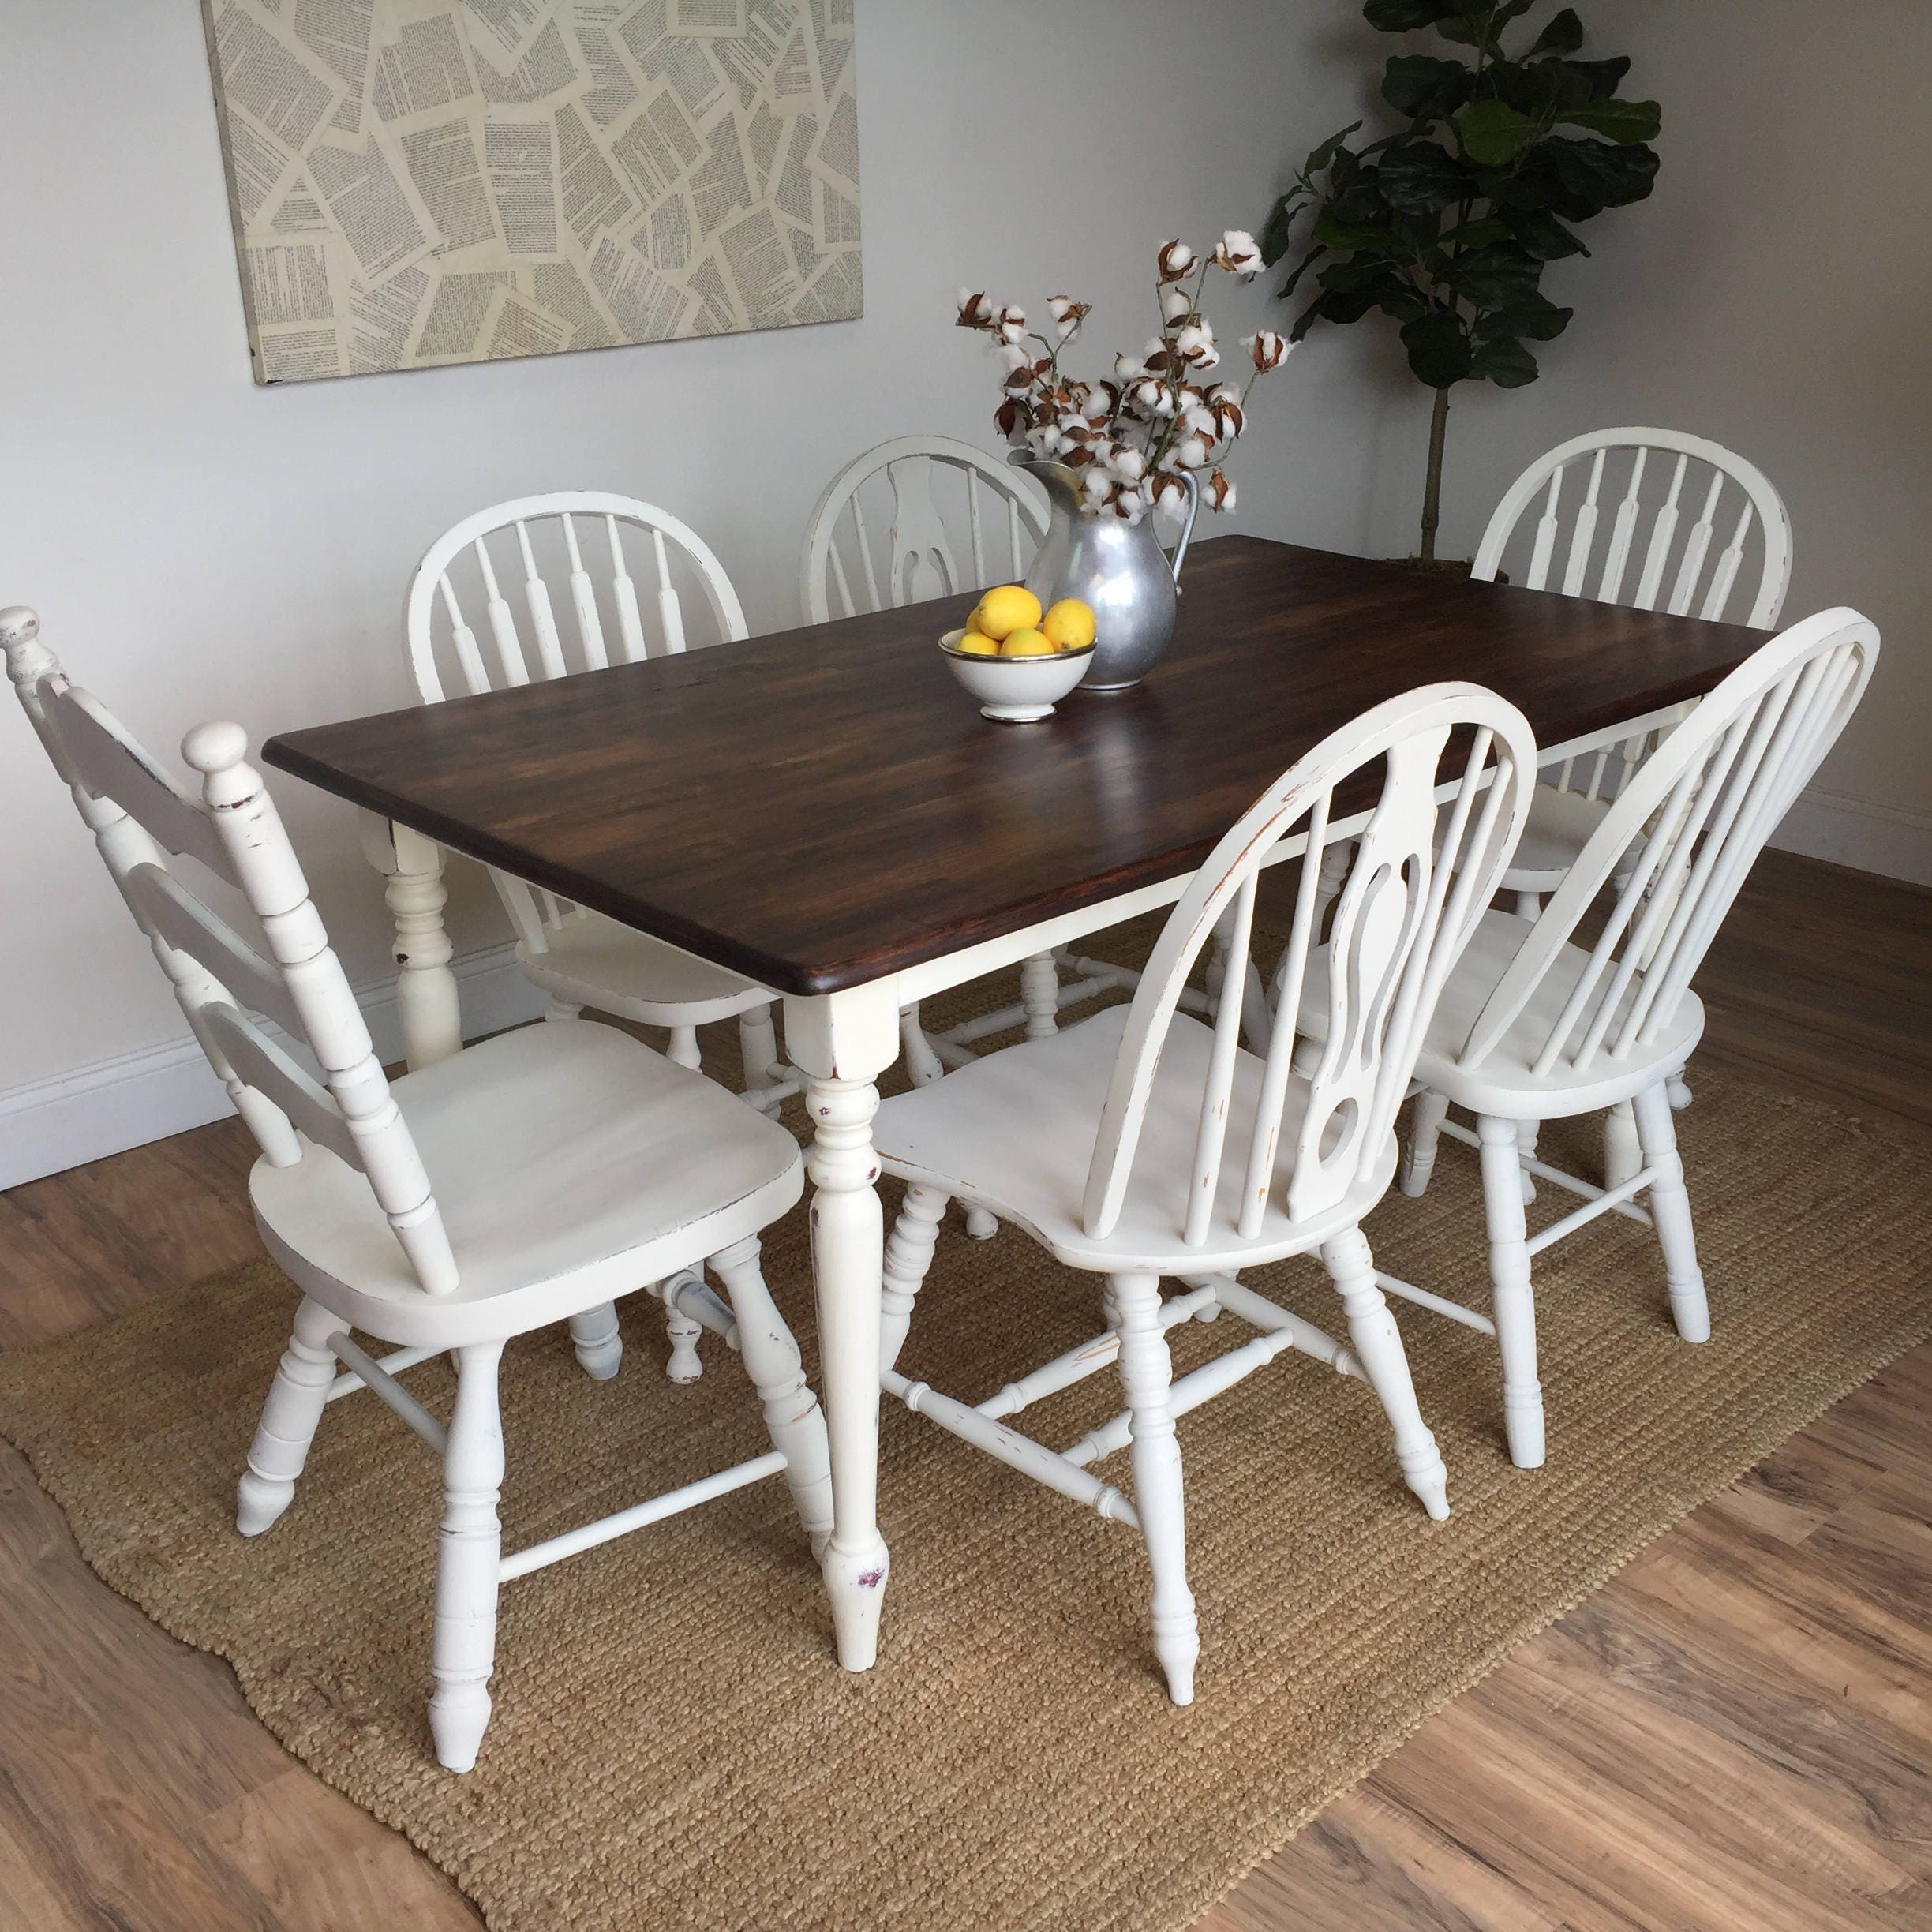 Small Country Table And Chairs: Country Cottage Furniture